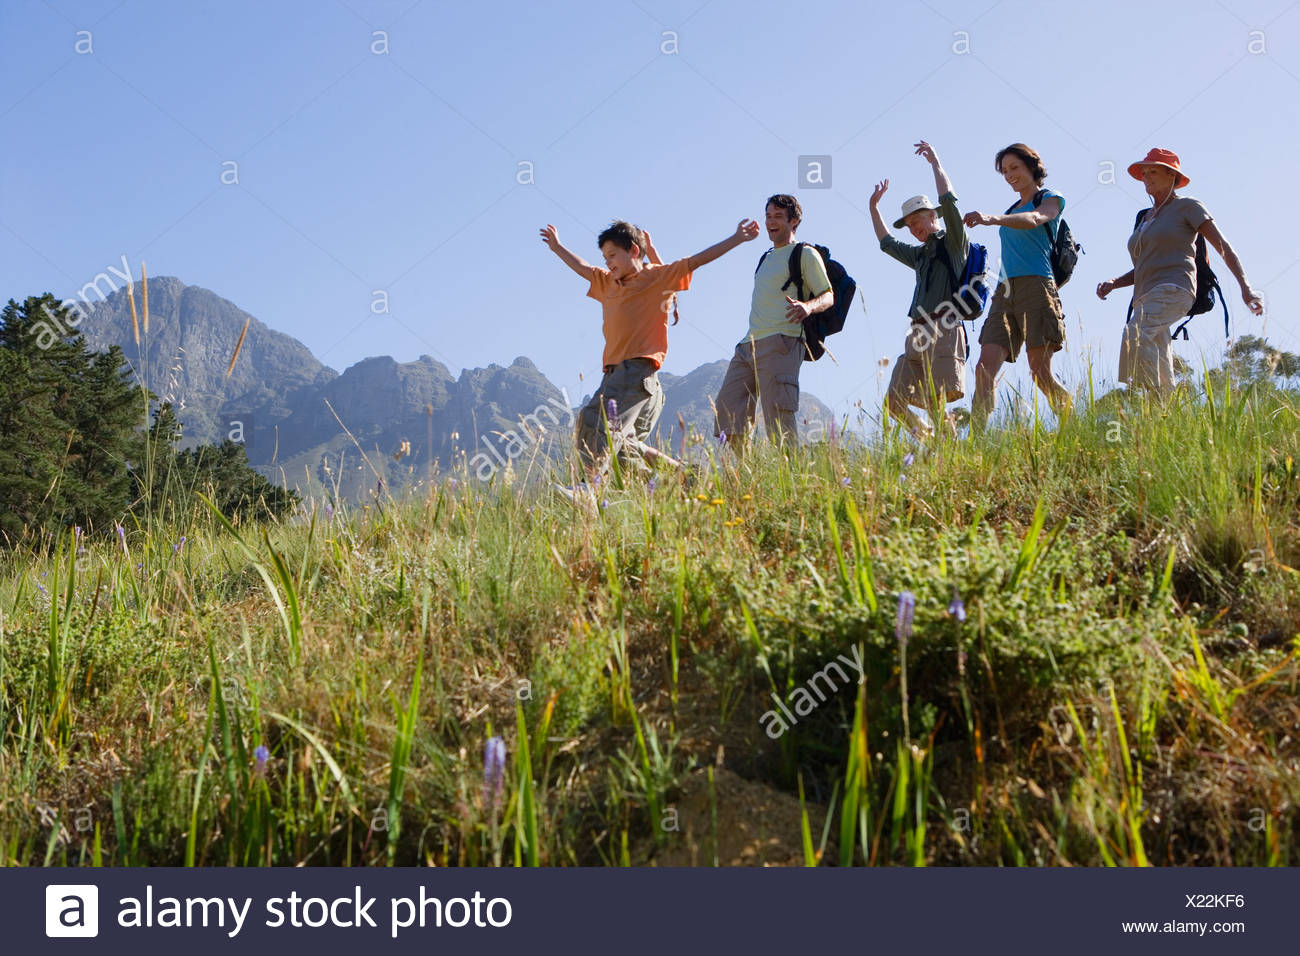 Multi generational family hiking on mountain trail walking in line boy 9 11 leading side view - Stock Image